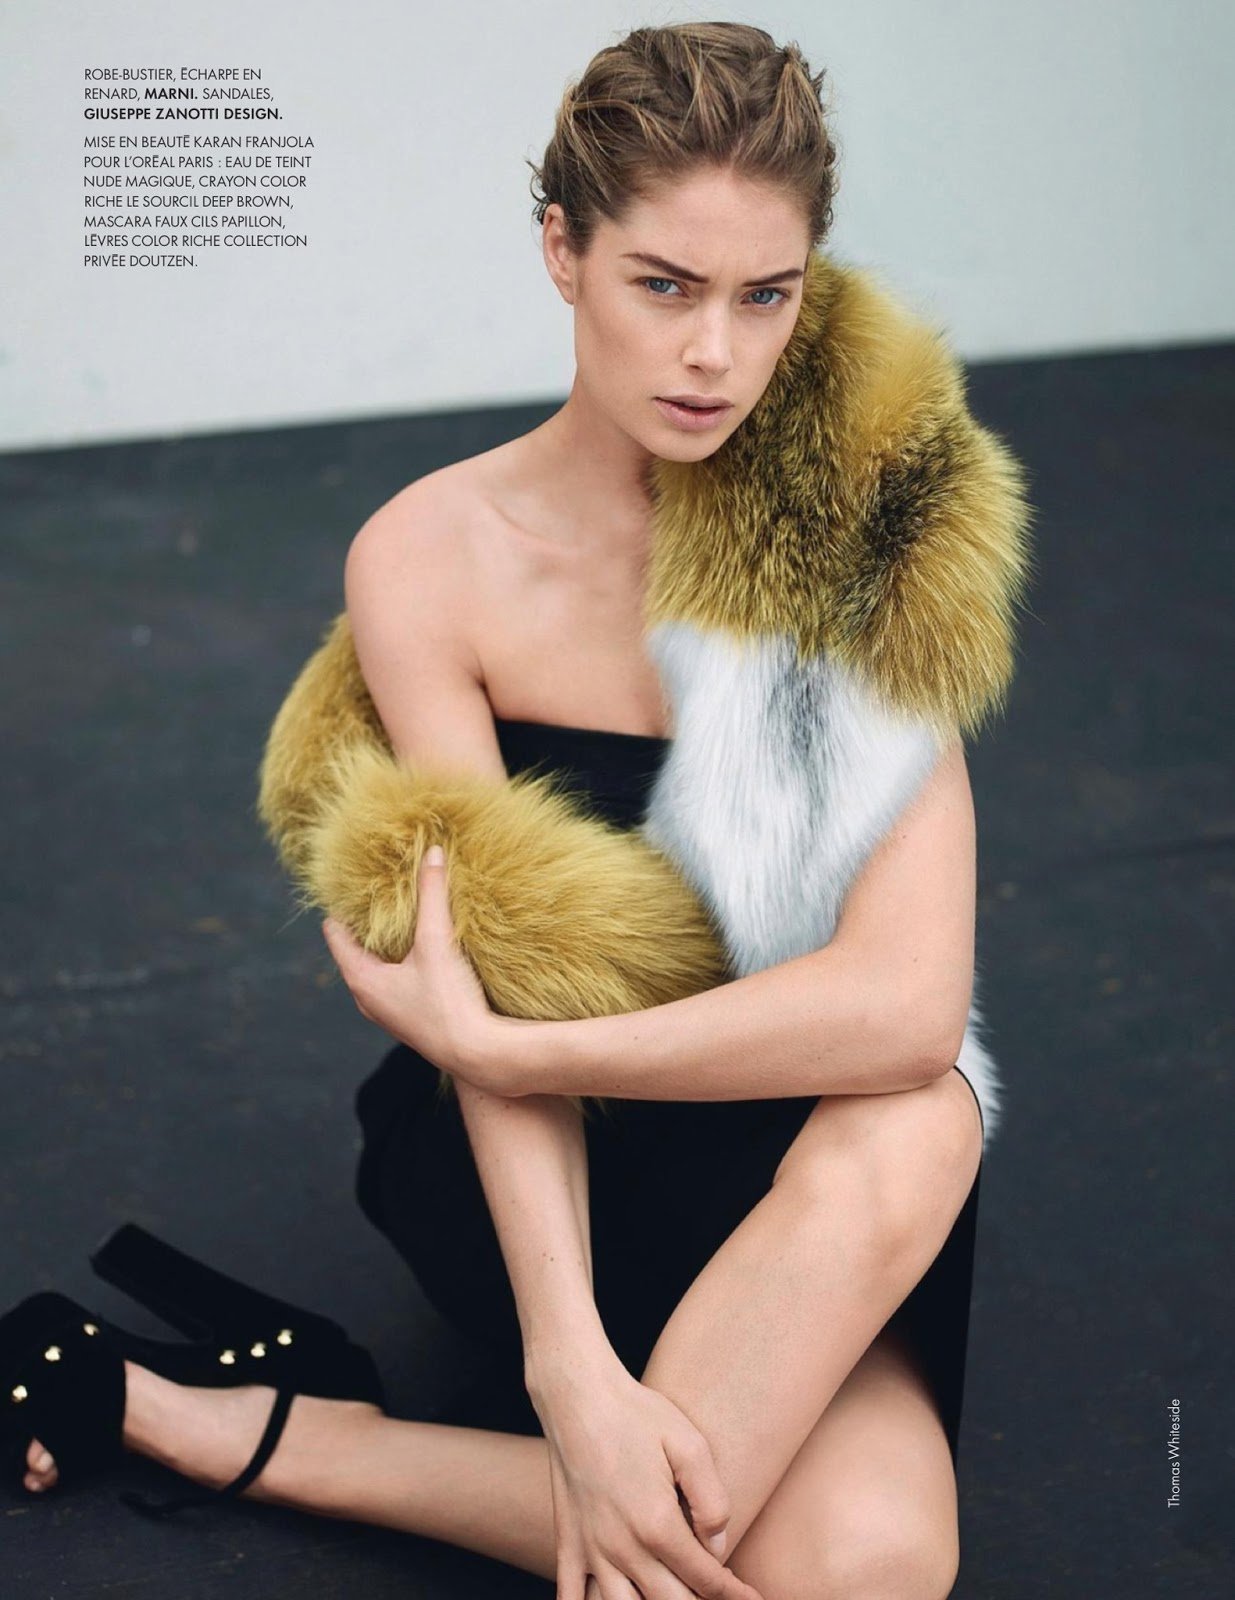 fashion_scans_remastered-doutzen_kroes-elle_france_2-issue_3531-scanned_by_vampirehorde-hq-21.jpg